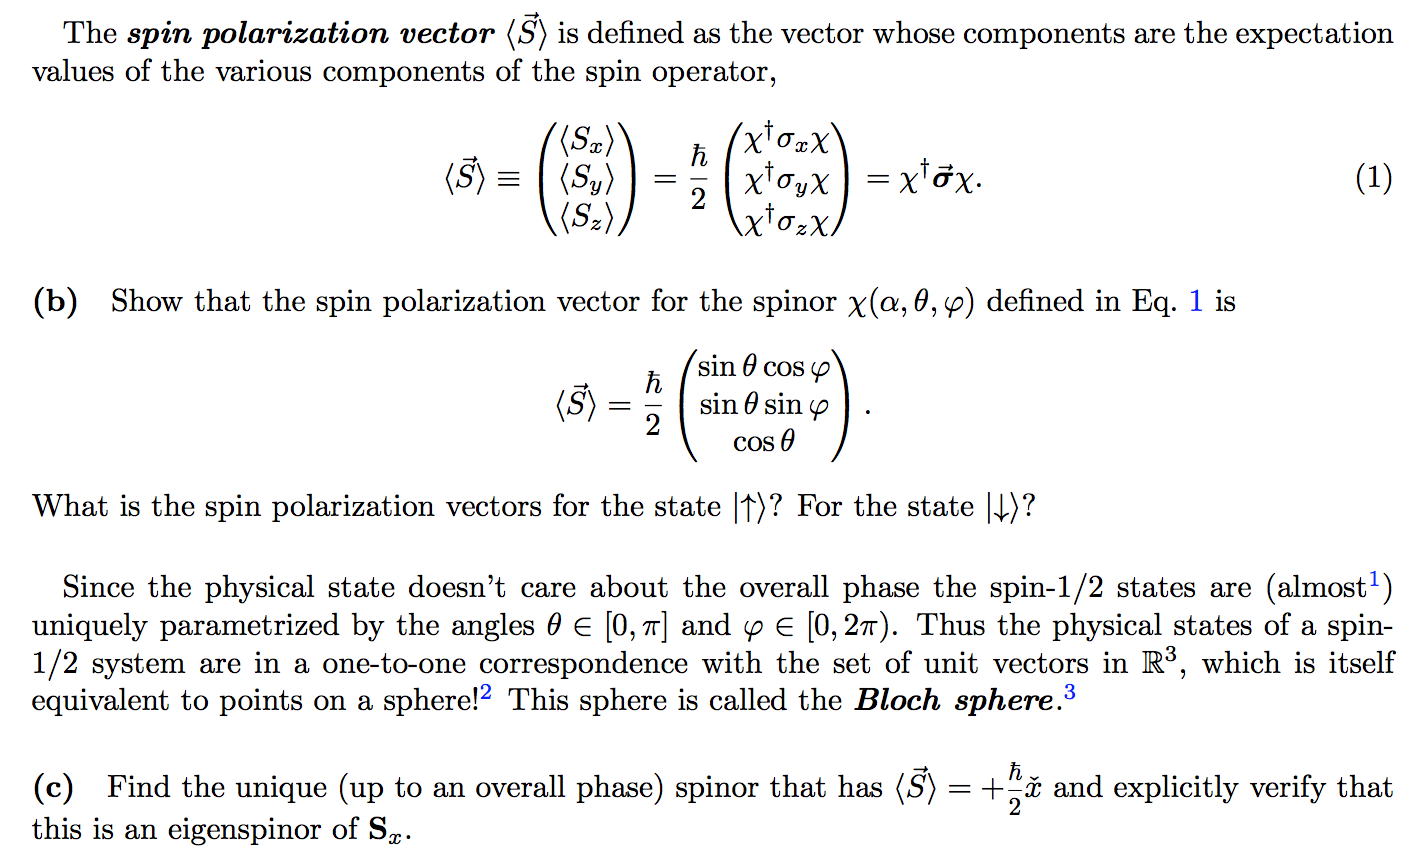 1404x856 The Spin Polarization Vector (S) Is Defined As The